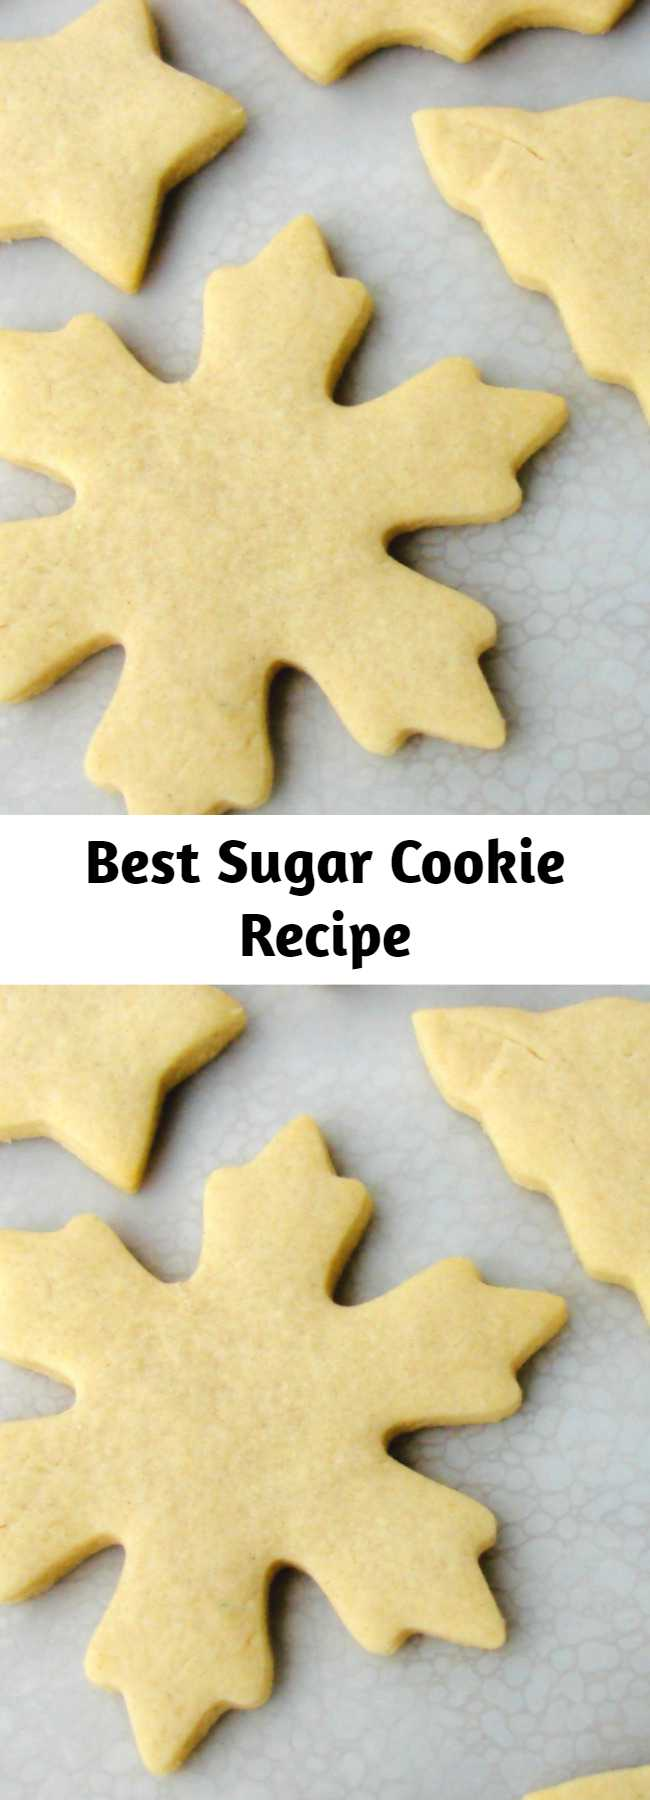 Best Sugar Cookie Recipe - This is the BEST sugar cookie recipe– no chilling the dough, cookies keep their shape when baked, soft and flavorful, perfect for decorating. Soft cut out sugar cookie recipe that keeps its shape and dough does not need to be chilled before baking- perfect edges every time!